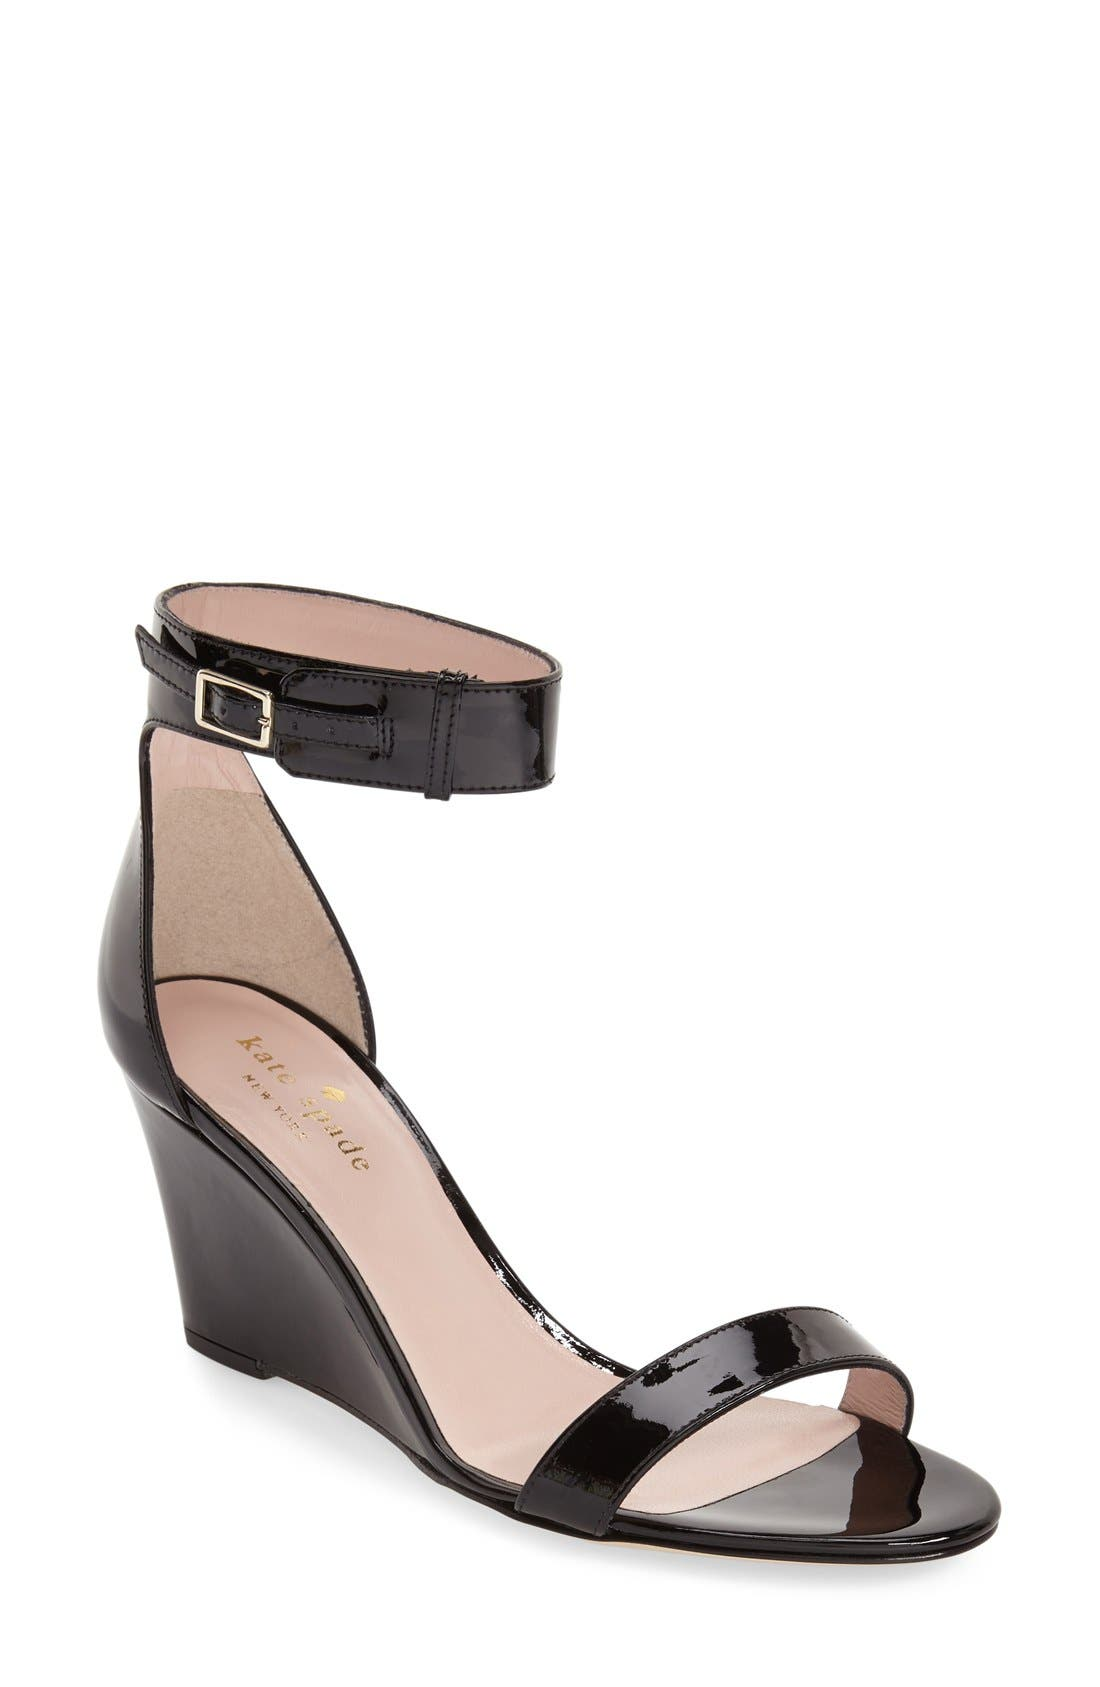 'ronia' wedge sandal,                         Main,                         color, Black Patent